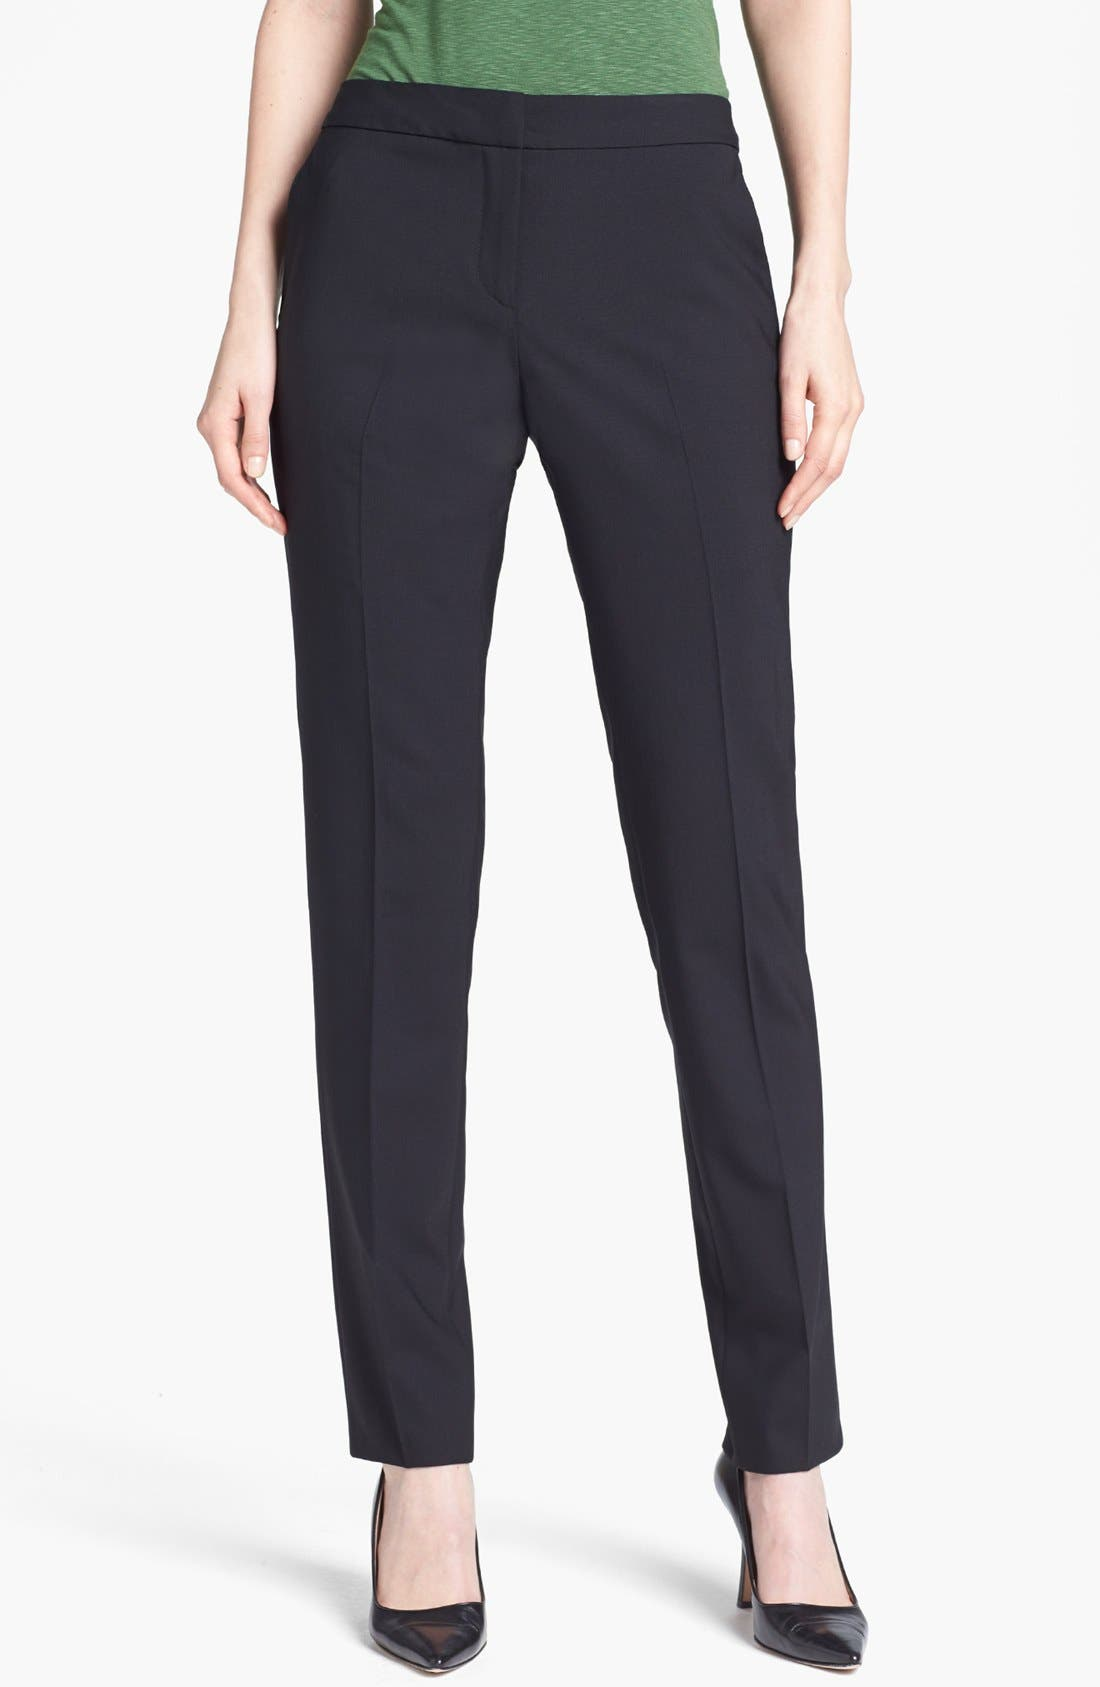 Alternate Image 1 Selected - Santorelli 'Alden' Slim Leg Pants